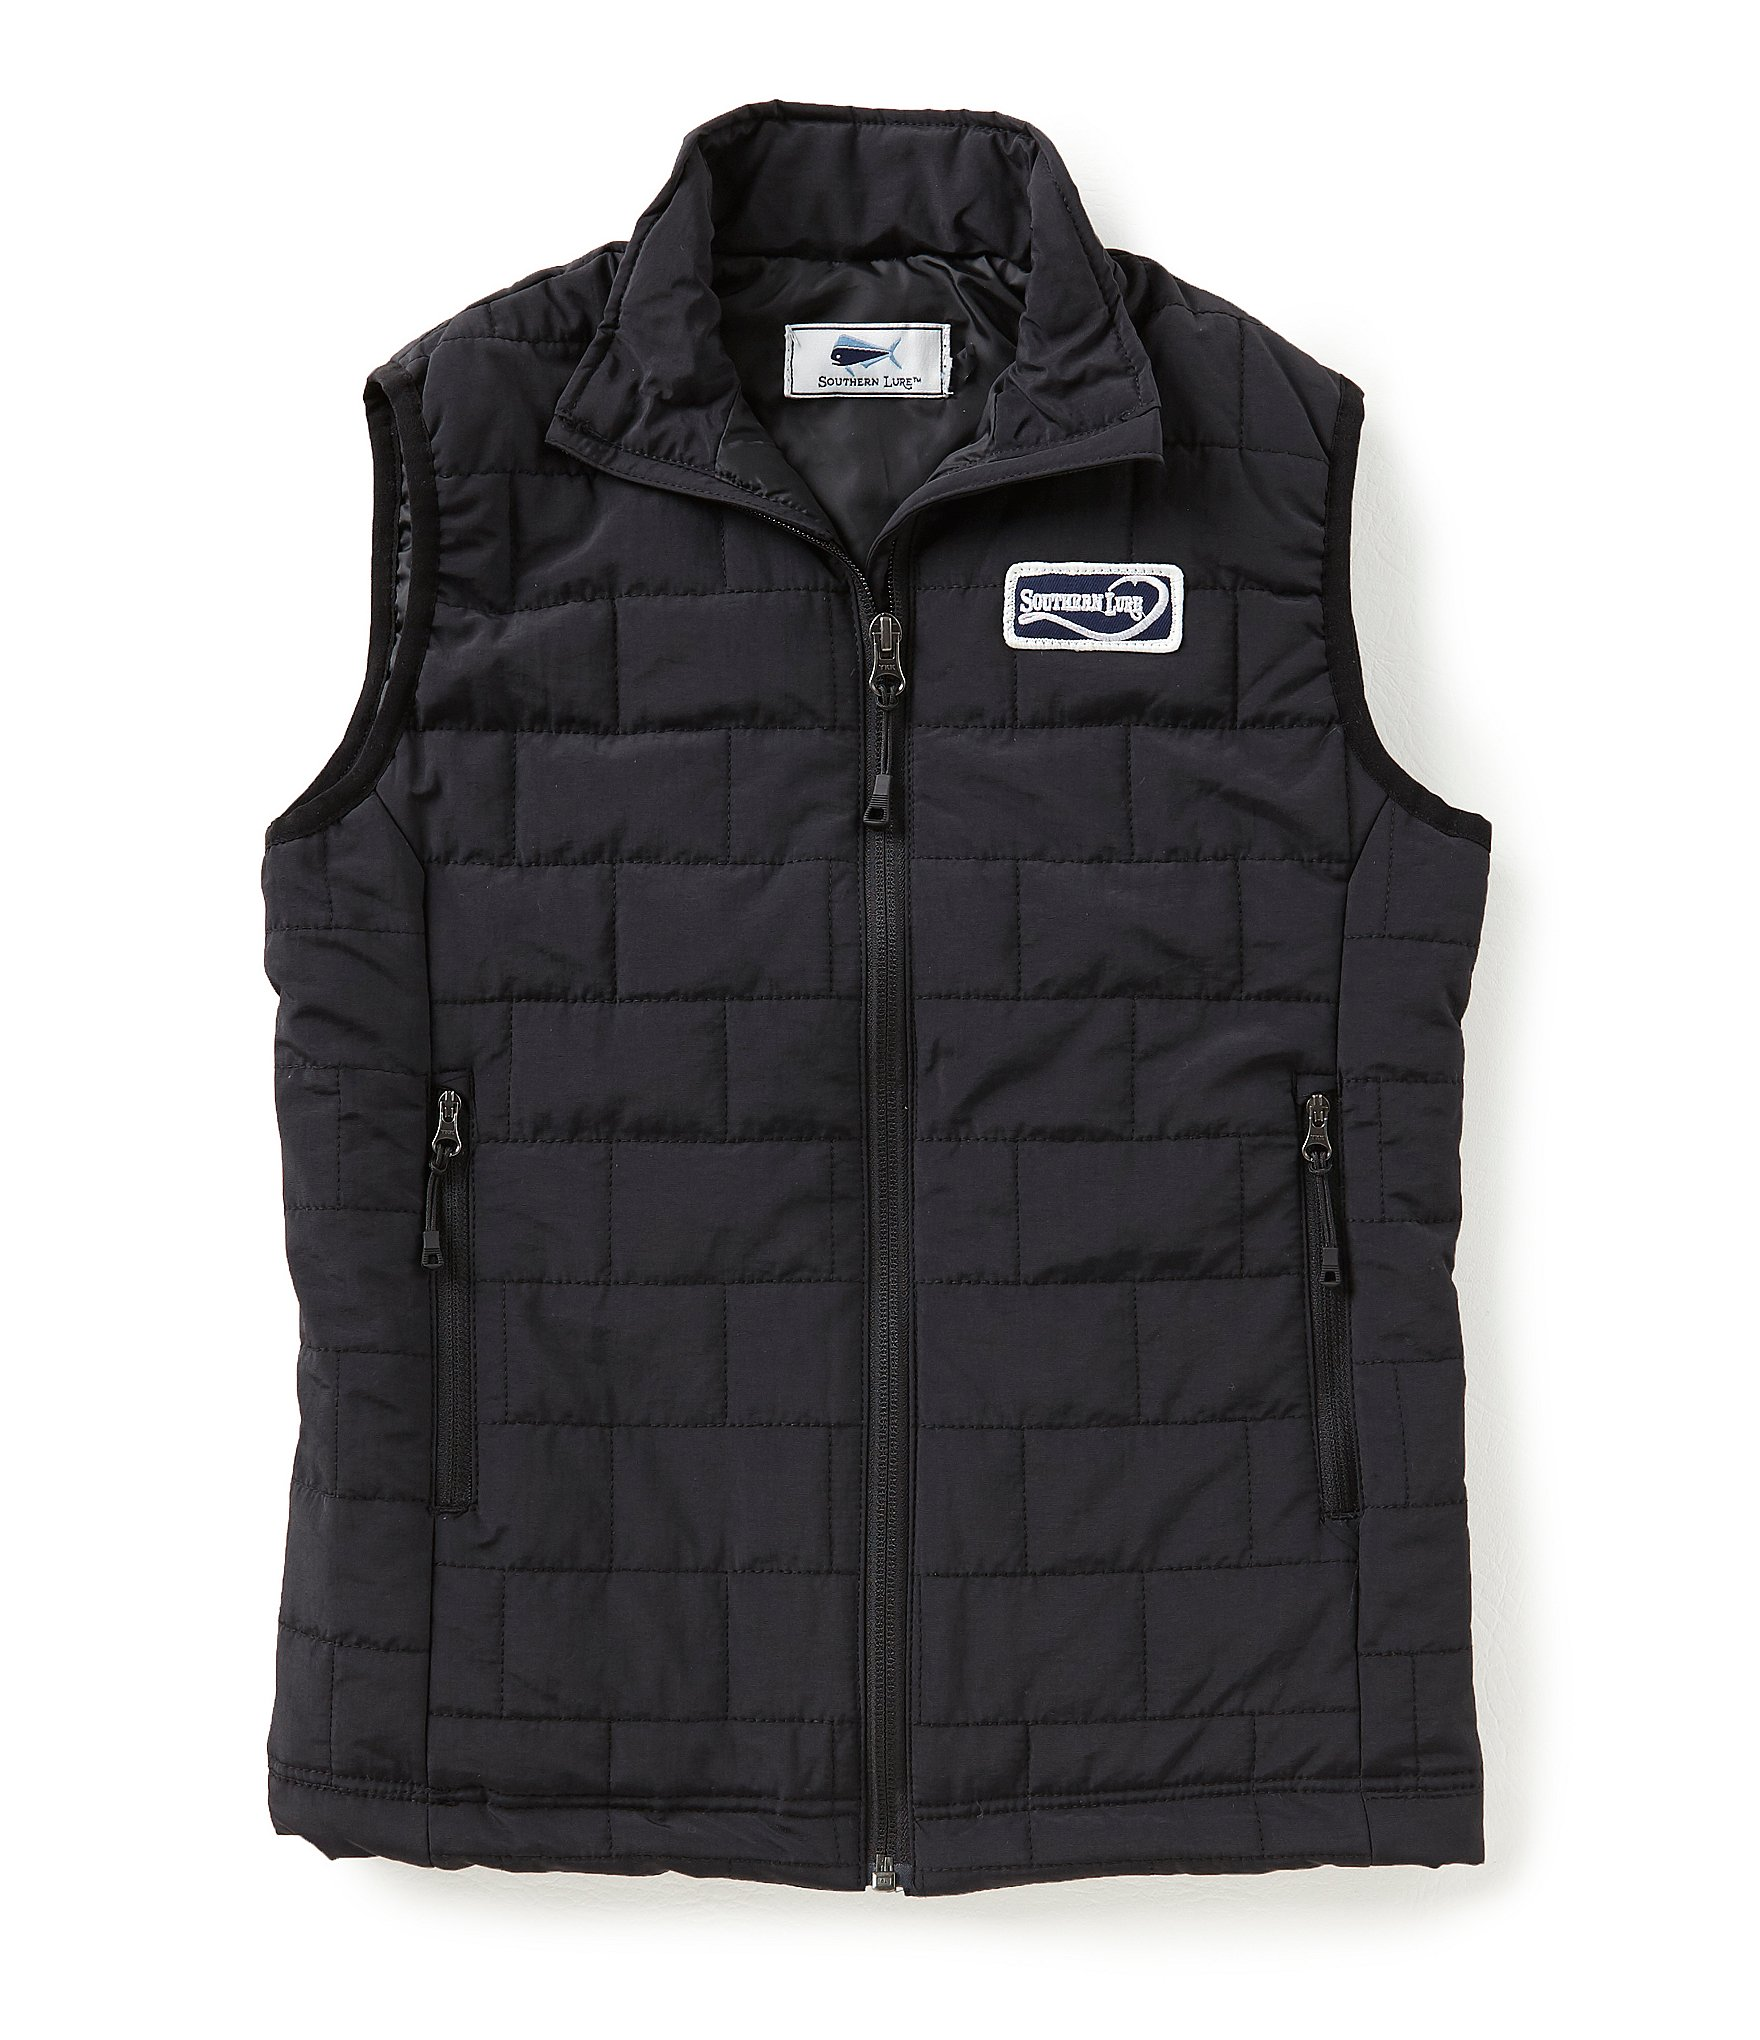 Shop for boys puffer vest online at Target. Free shipping on purchases over $35 and save 5% every day with your Target REDcard.